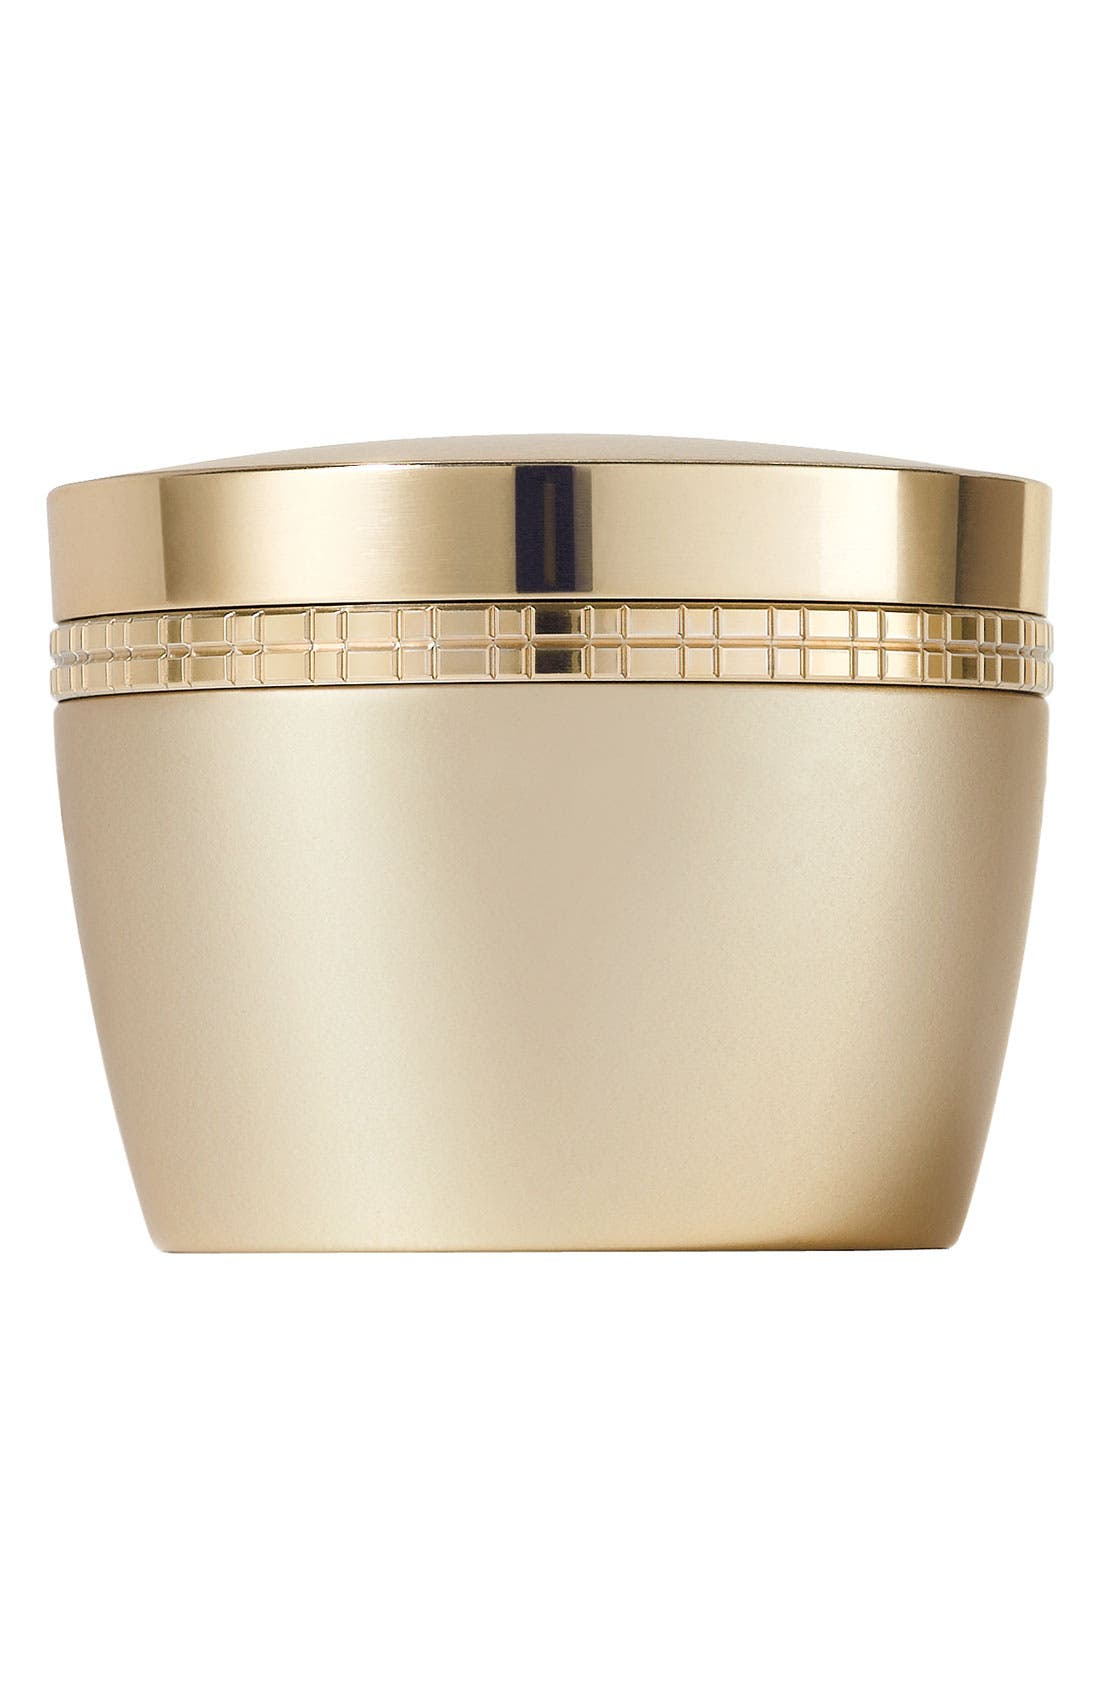 ELIZABETH ARDEN,                             Ceramide Premiere Regeneration Eye Cream,                             Main thumbnail 1, color,                             NO COLOR